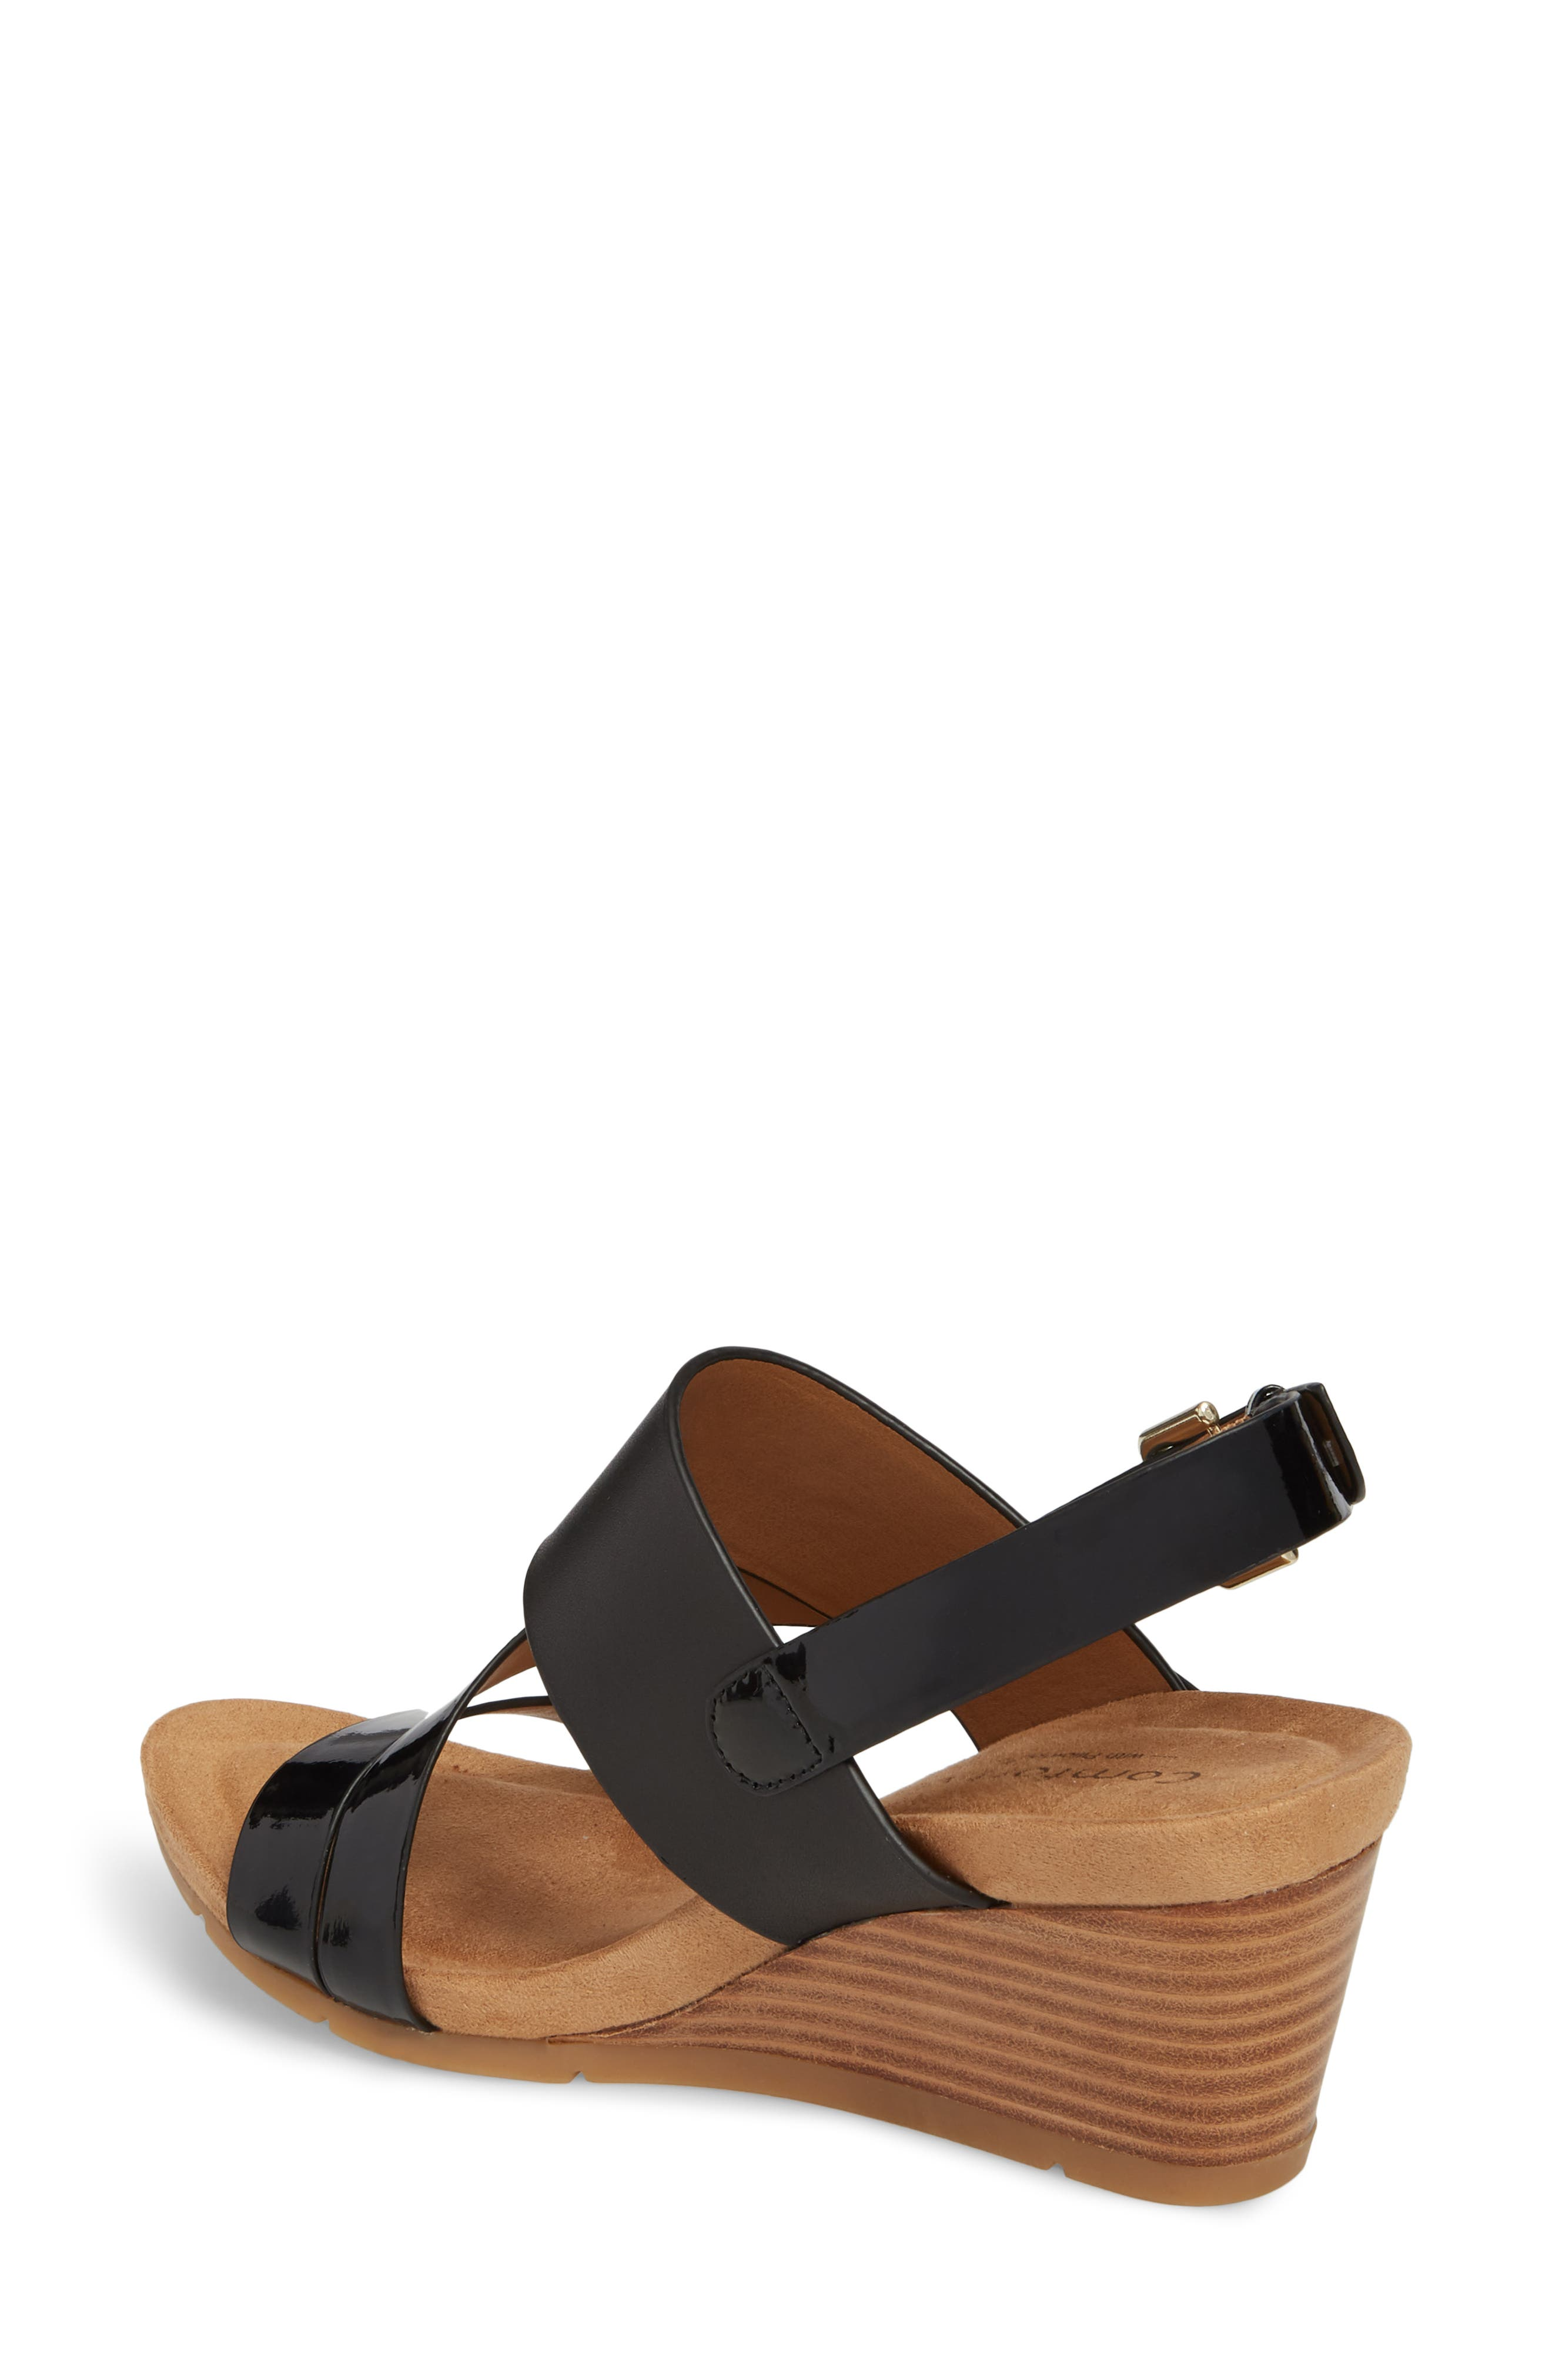 Vail Wedge Sandal,                             Alternate thumbnail 2, color,                             Black Leather